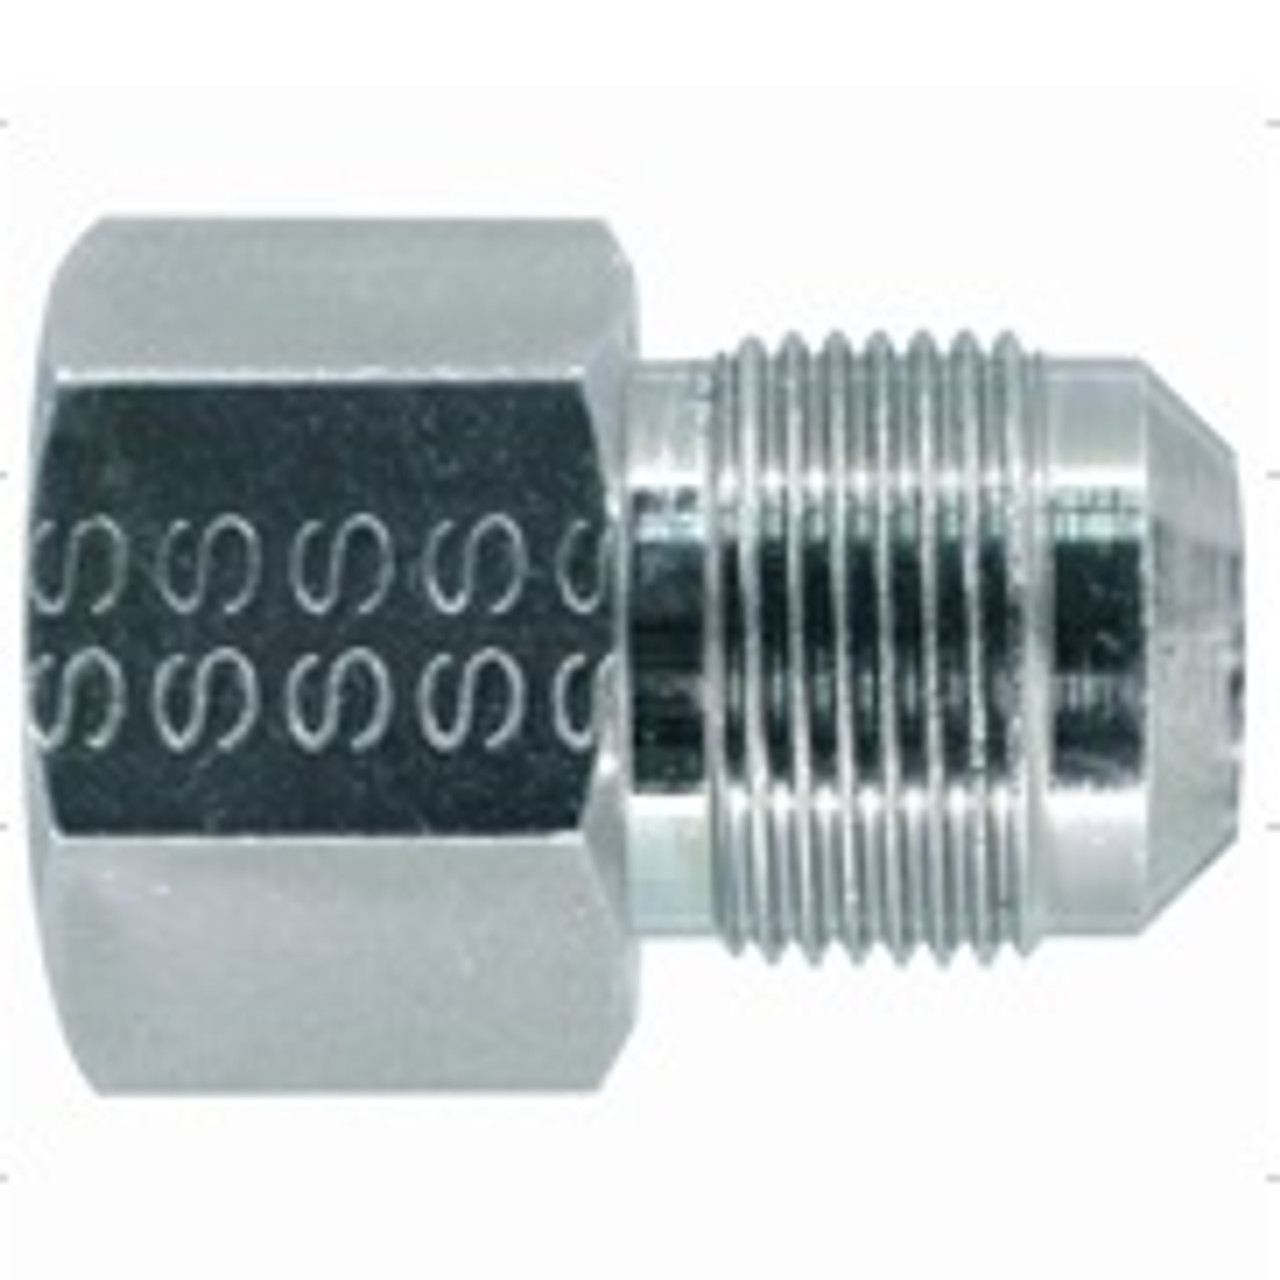 """5/8""""MF x 3/4""""FIP  END FITTING FOR 5/8"""" GAS LINES"""